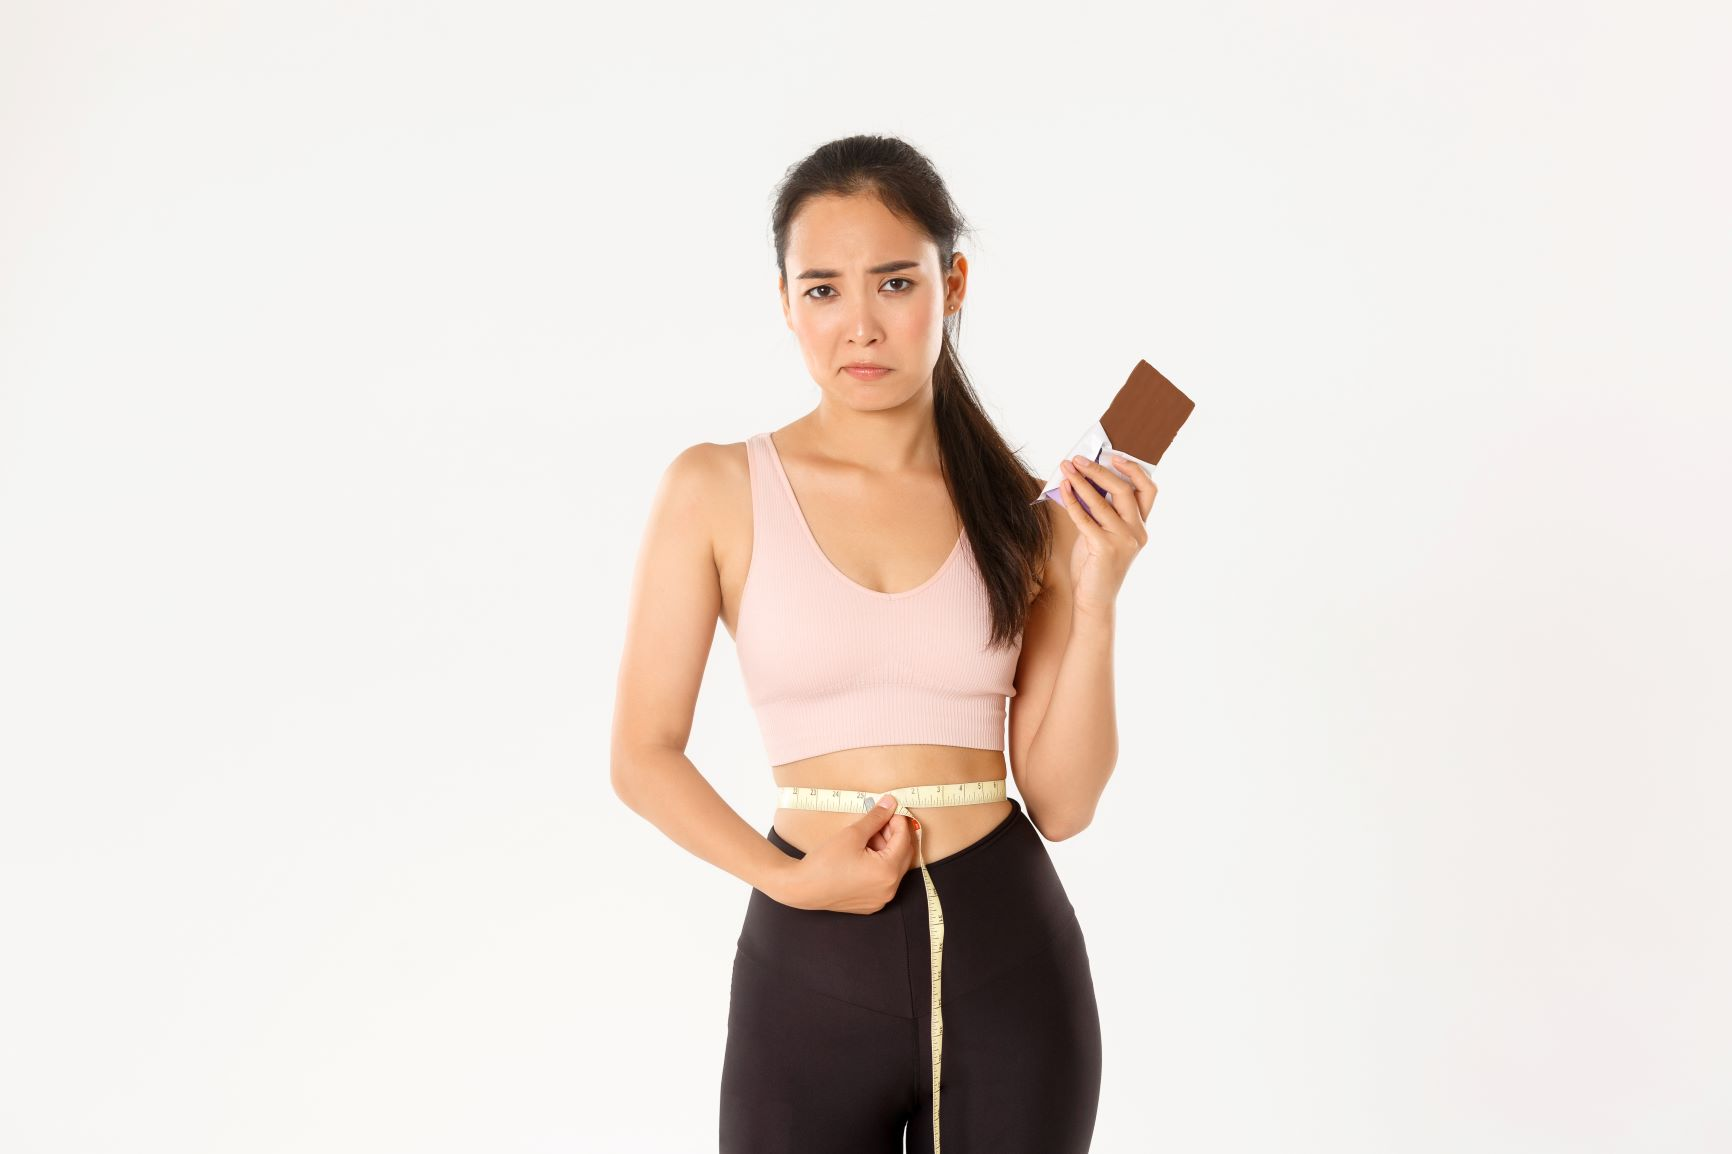 How to control emotional eating